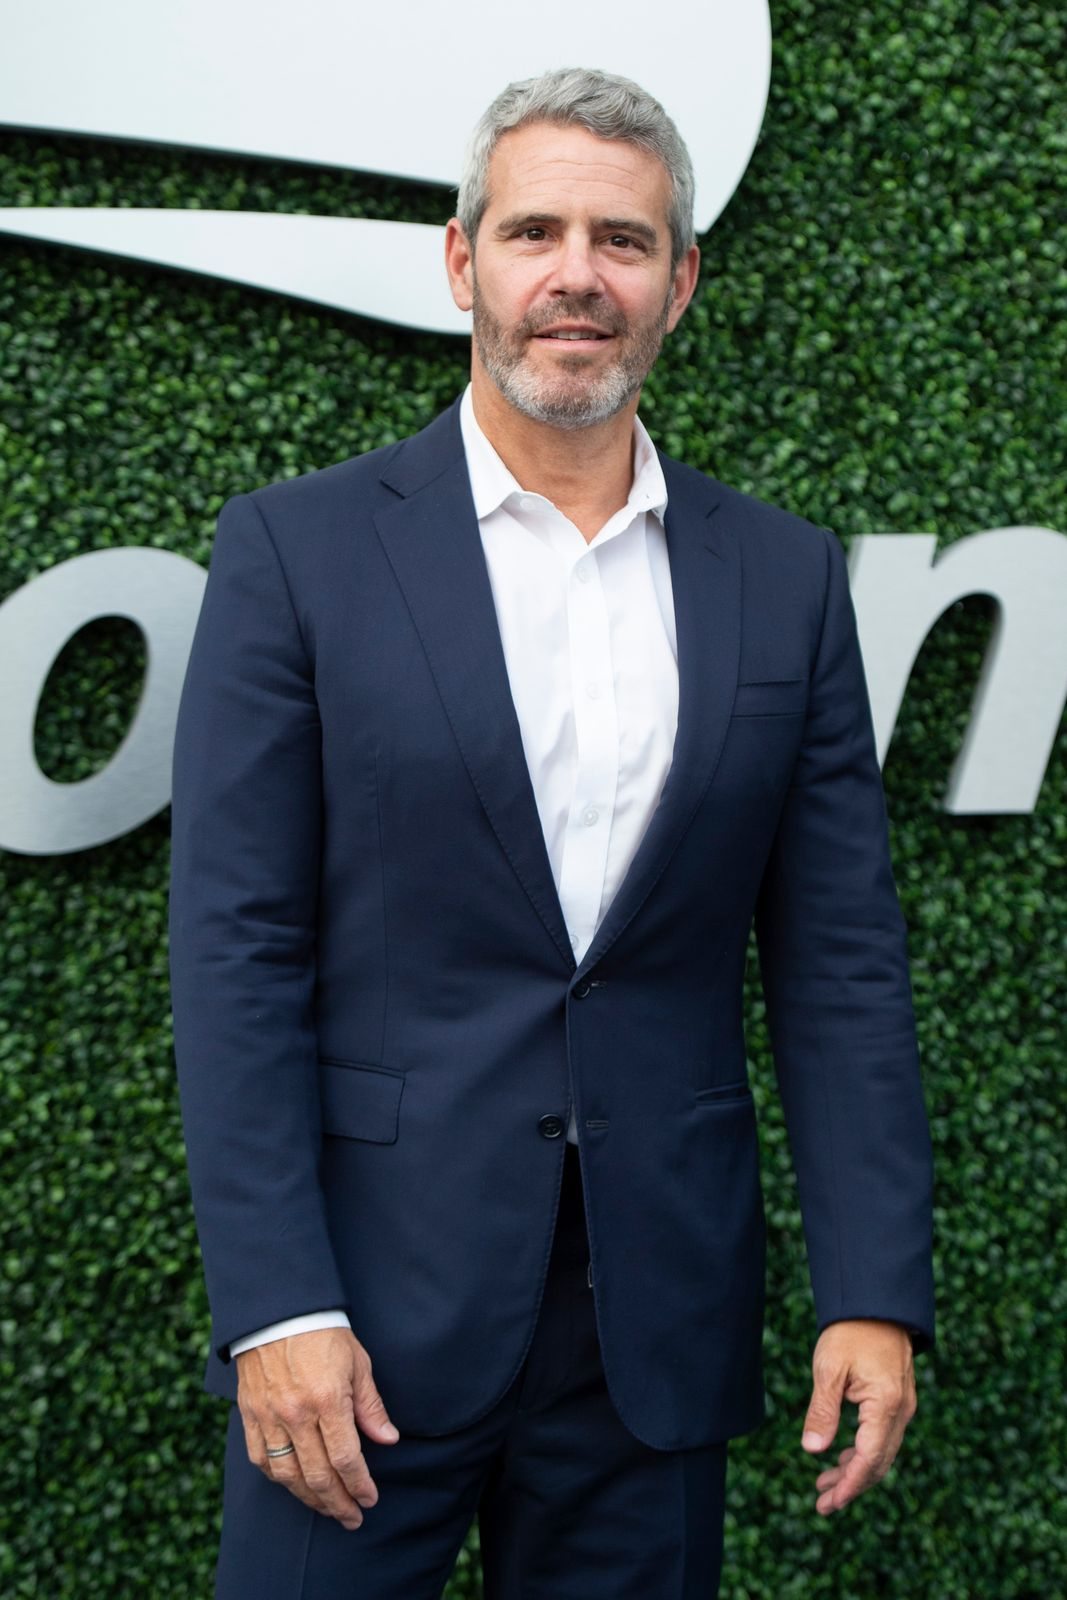 Andy Cohen at the US Open on September 5, 2019, in New York City | Photo: Adrian Edwards/GC Images/Getty Images